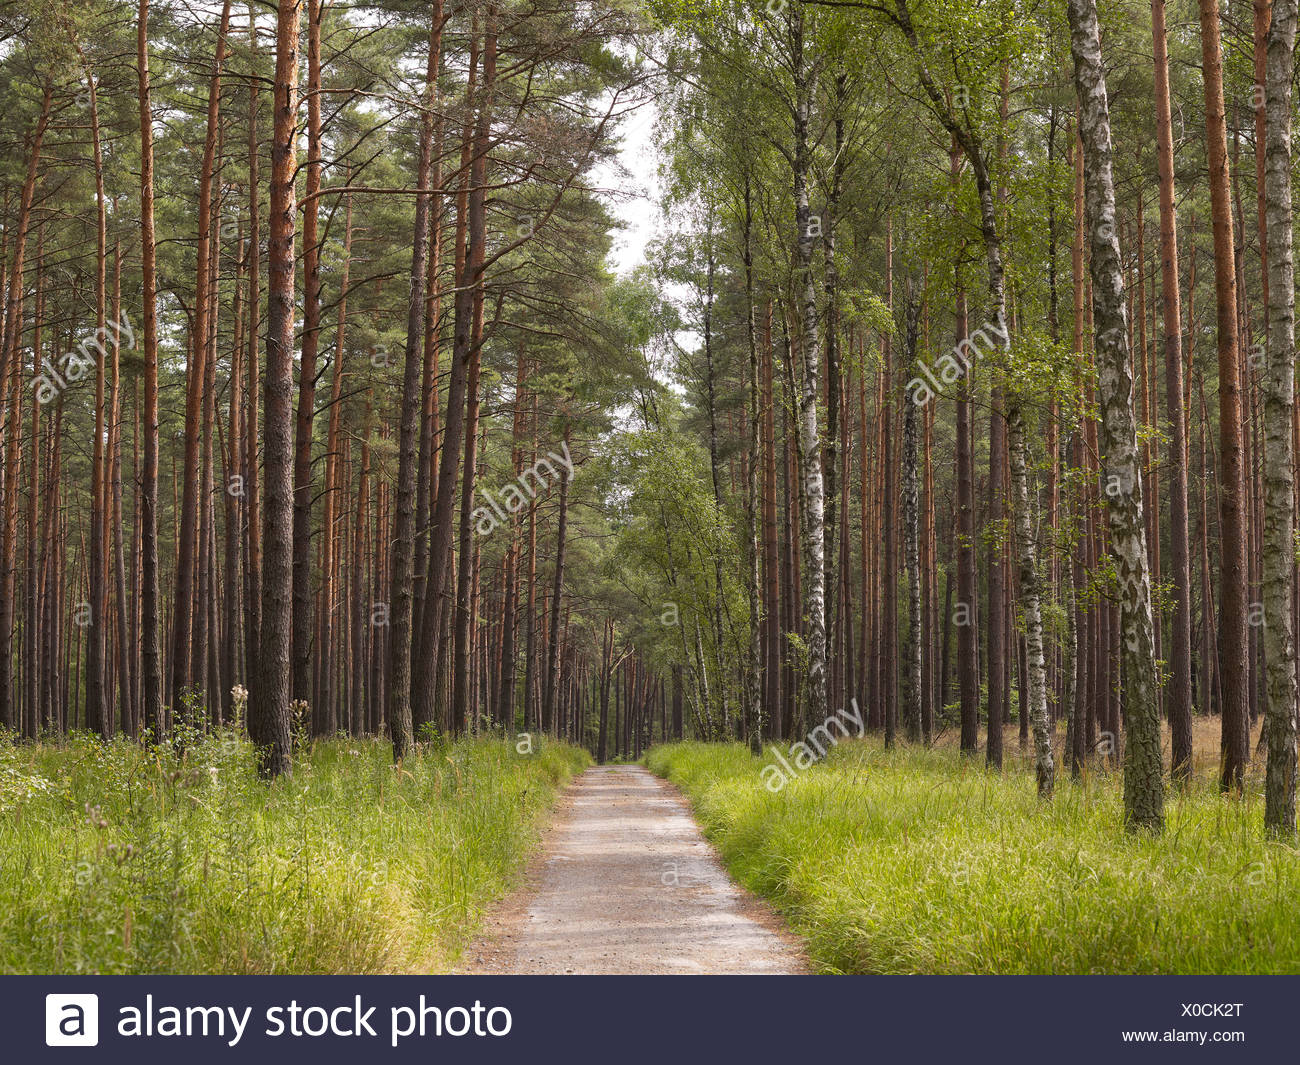 Woodland with conifers and birch trees, Mueritz National Park, Mecklenburg Lake District, Mecklenburg-Western Pomerania - Stock Image